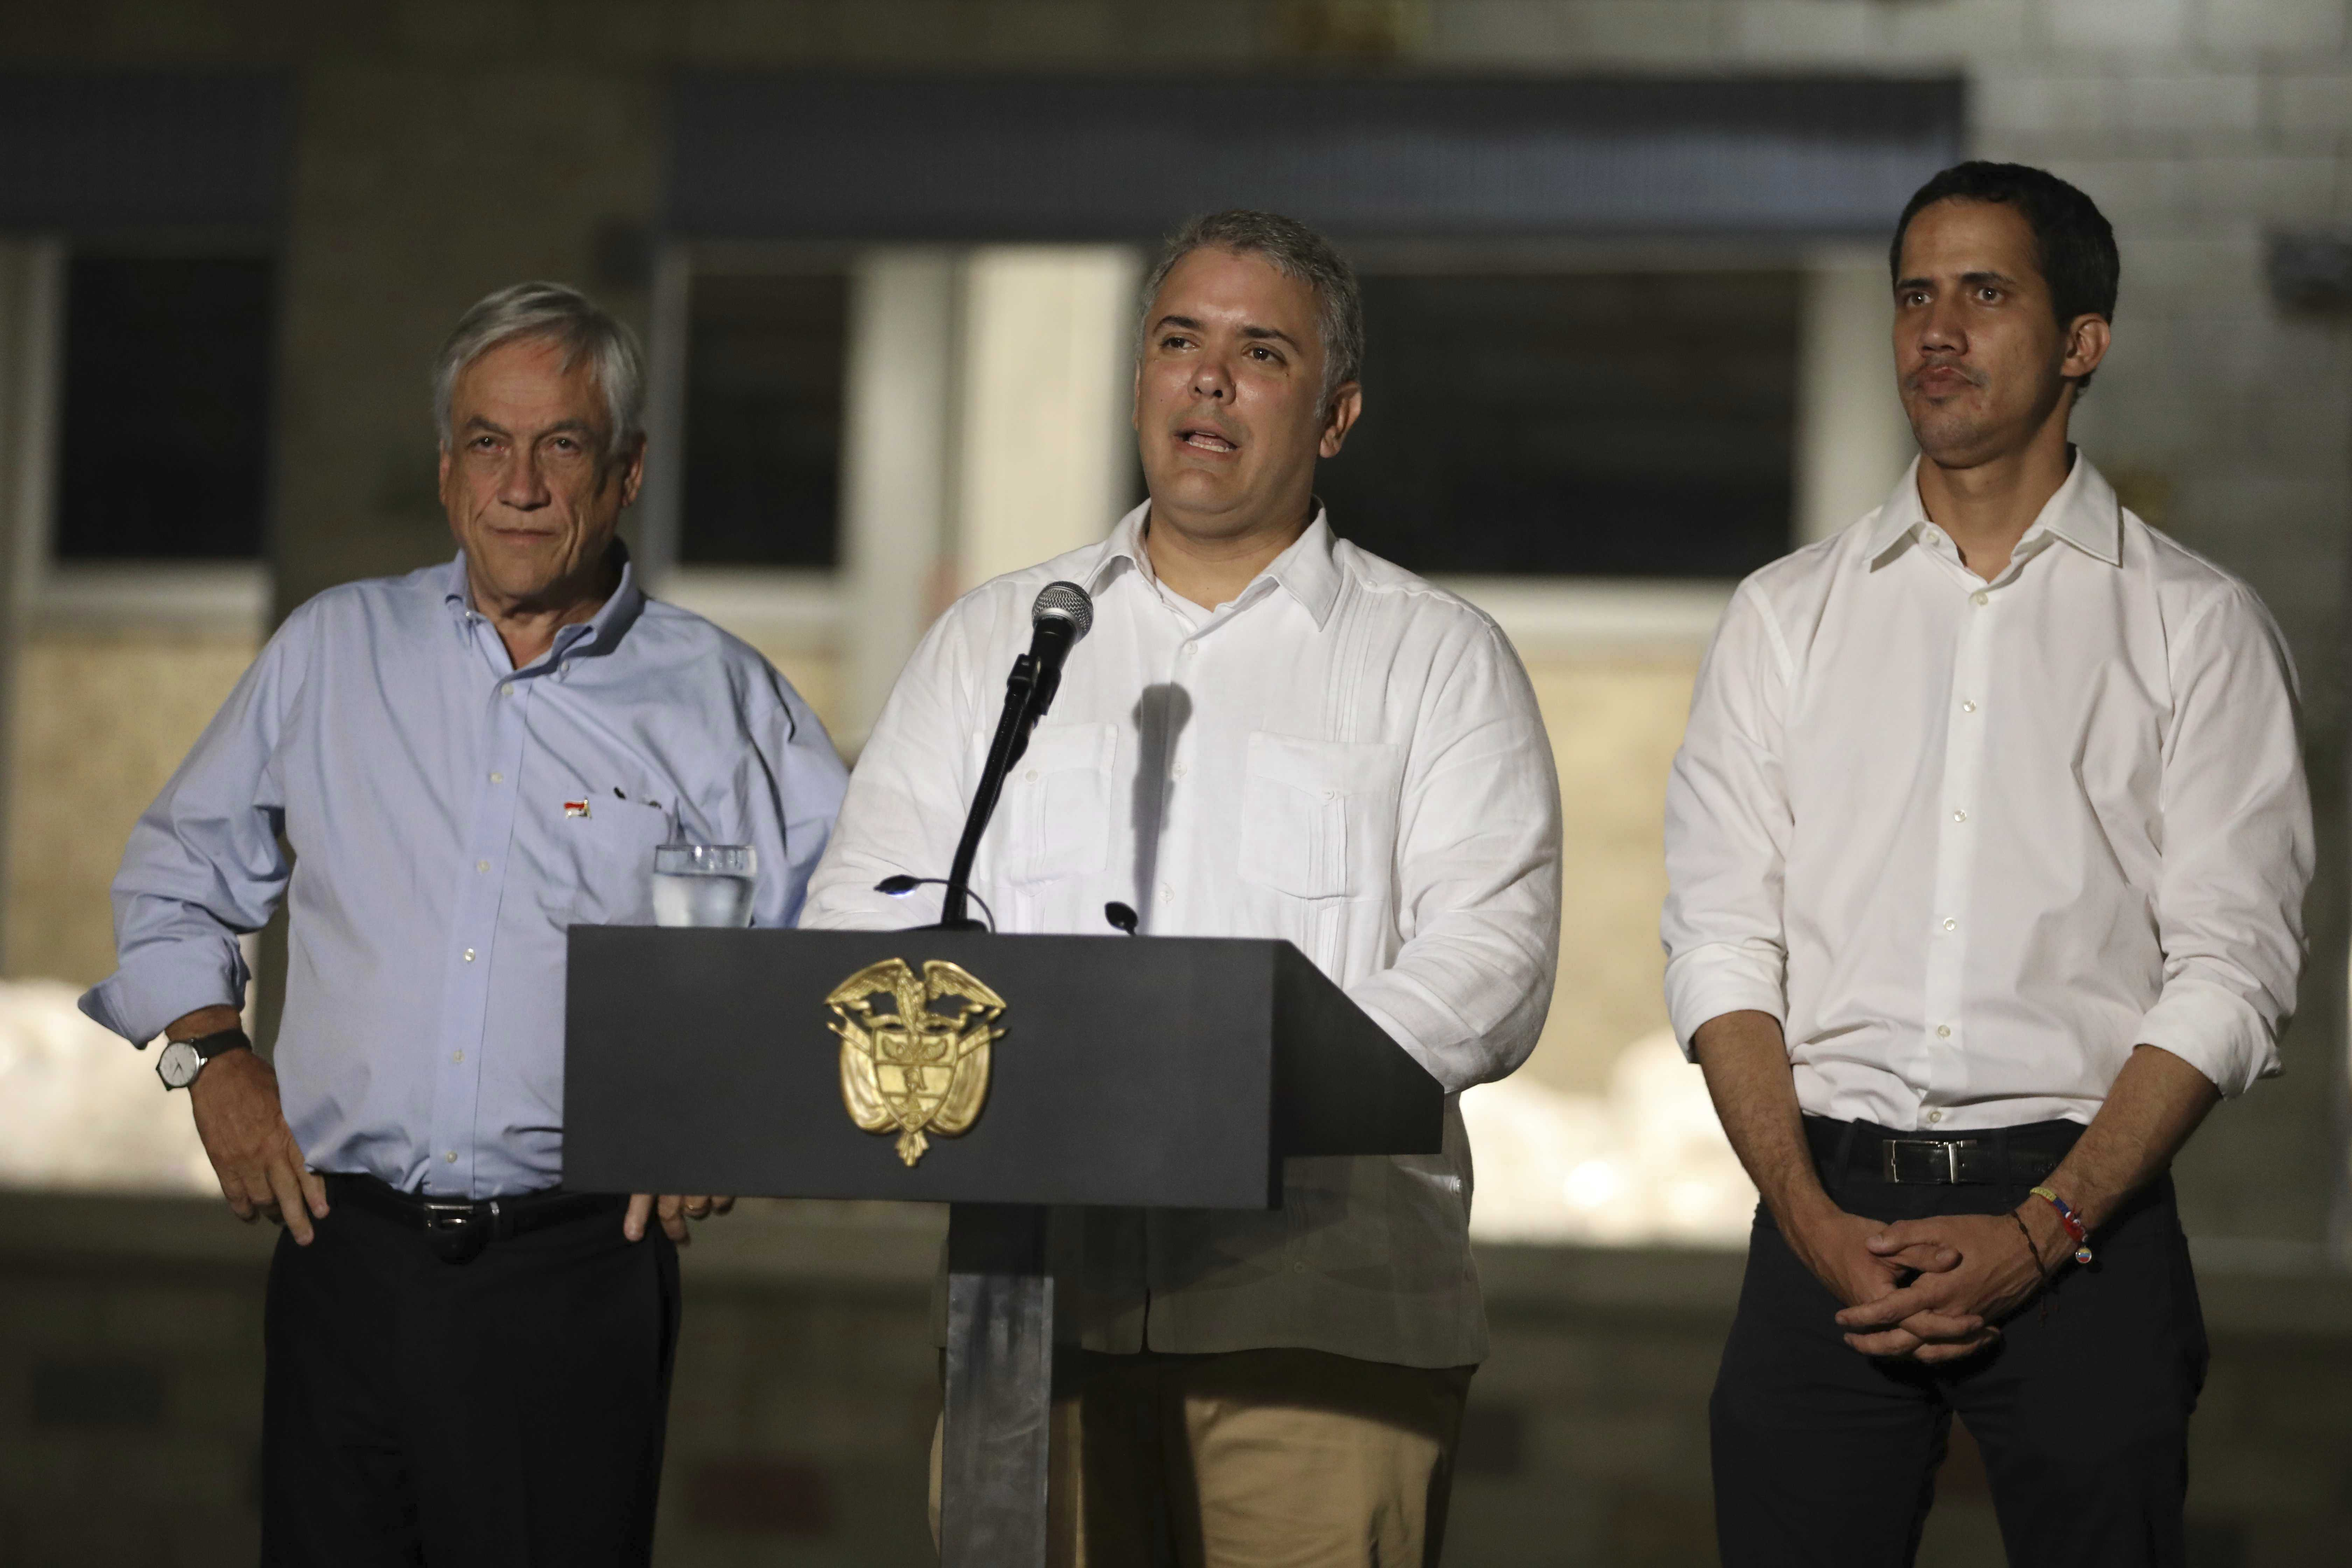 Colombia's President Ivan Duque, speaks flanked by Chile's President Sebastian Pinera, left, and Venezuela's self-proclaimed interim president Juan Guaido, in front of the warehouse housing U.S. humanitarian aid destined for Venezuela, in Cucuta, Colombia, Friday, Feb. 22, 2019. (AP Photo/Fernando Vergara)